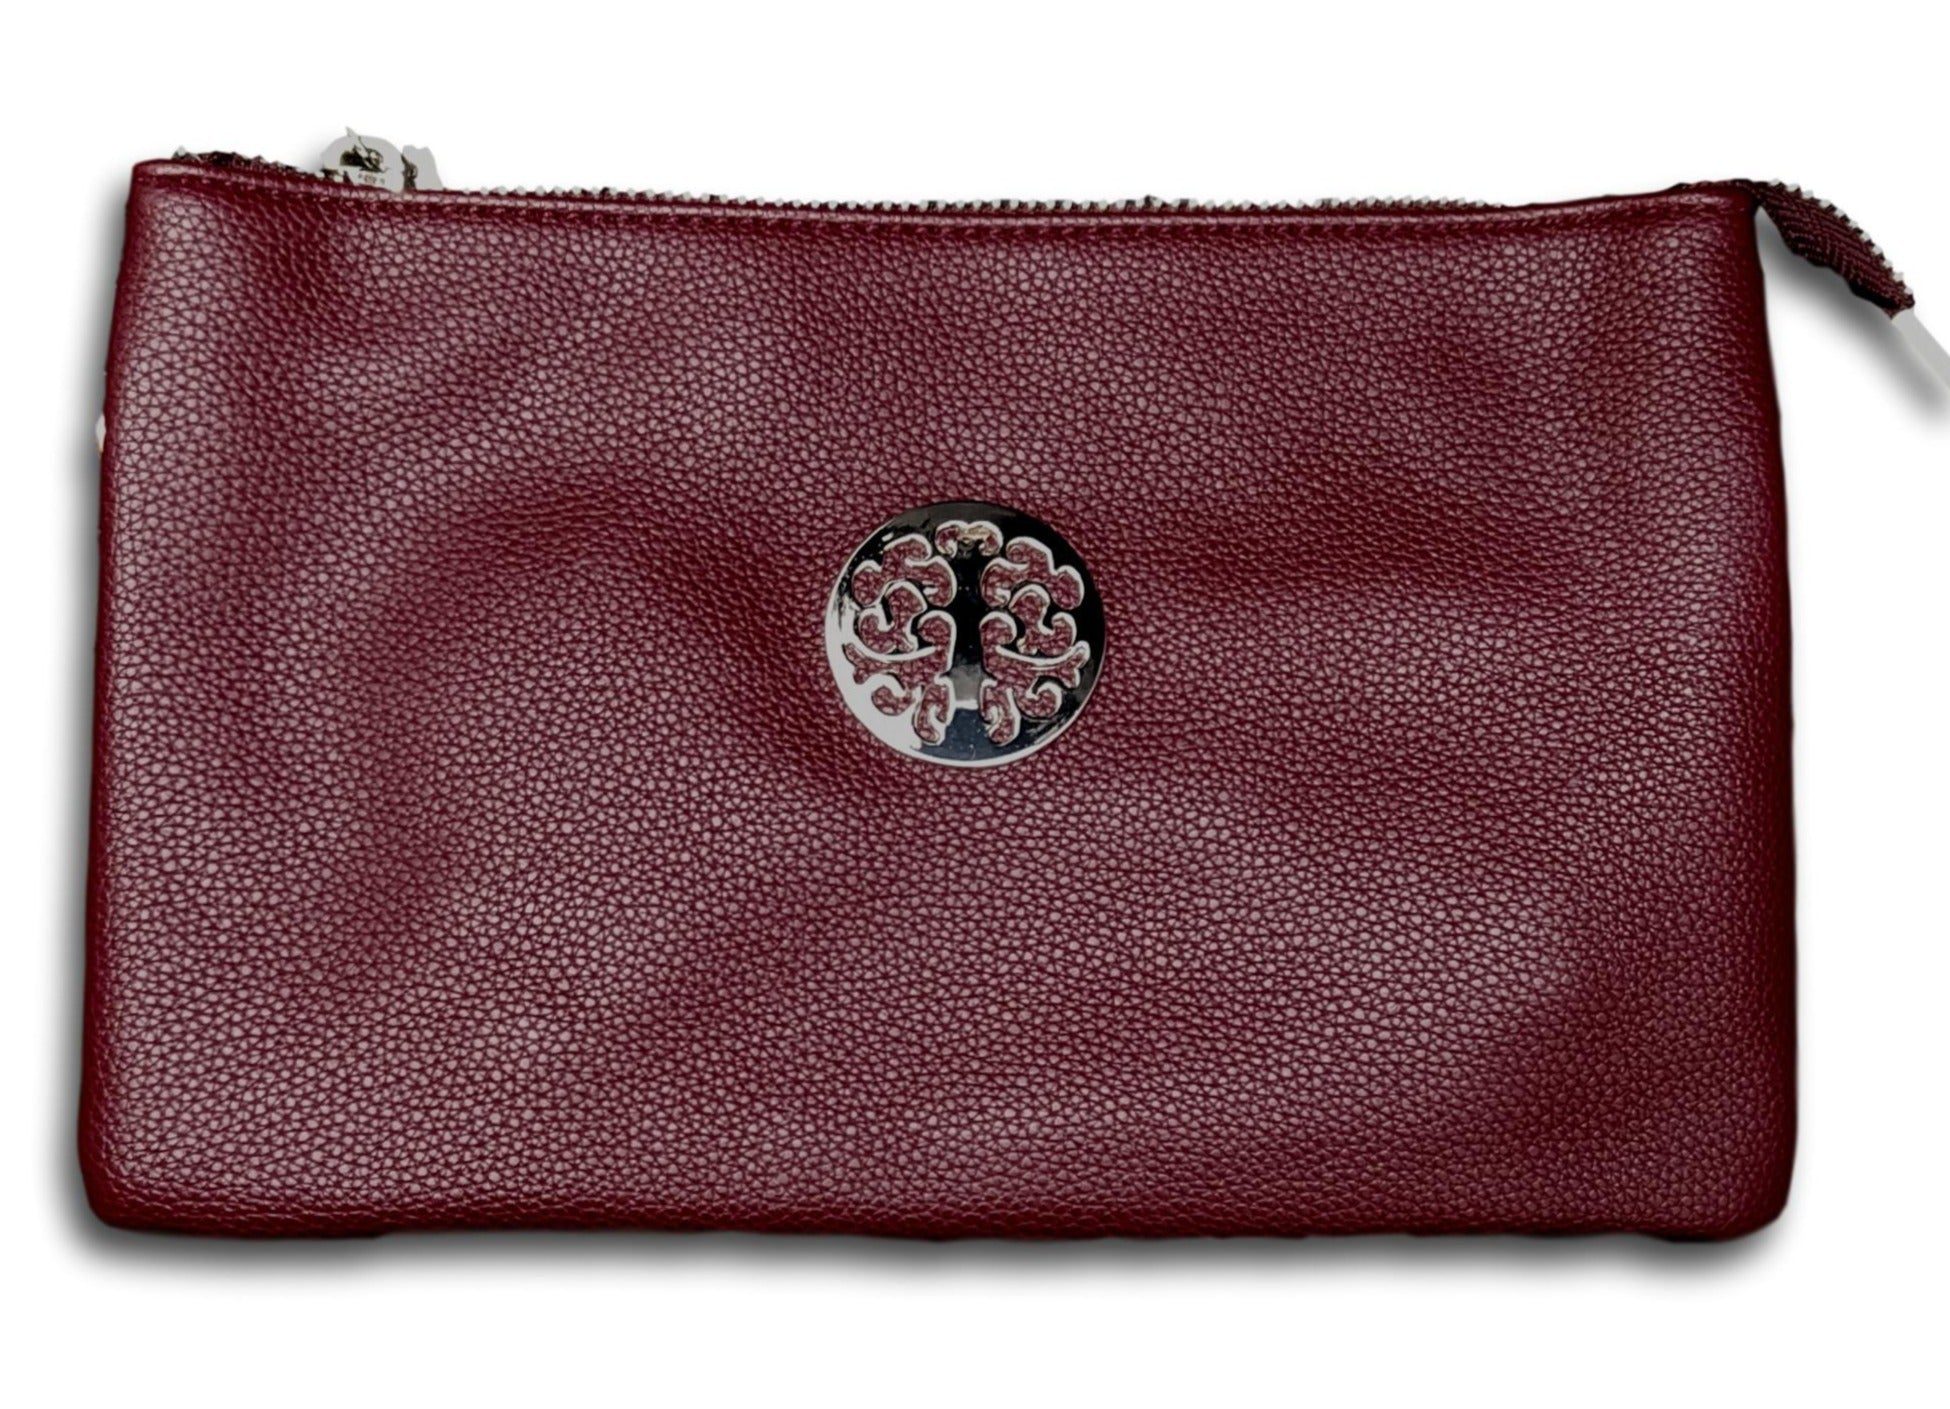 CL002 Burgundy Large Tree Bag